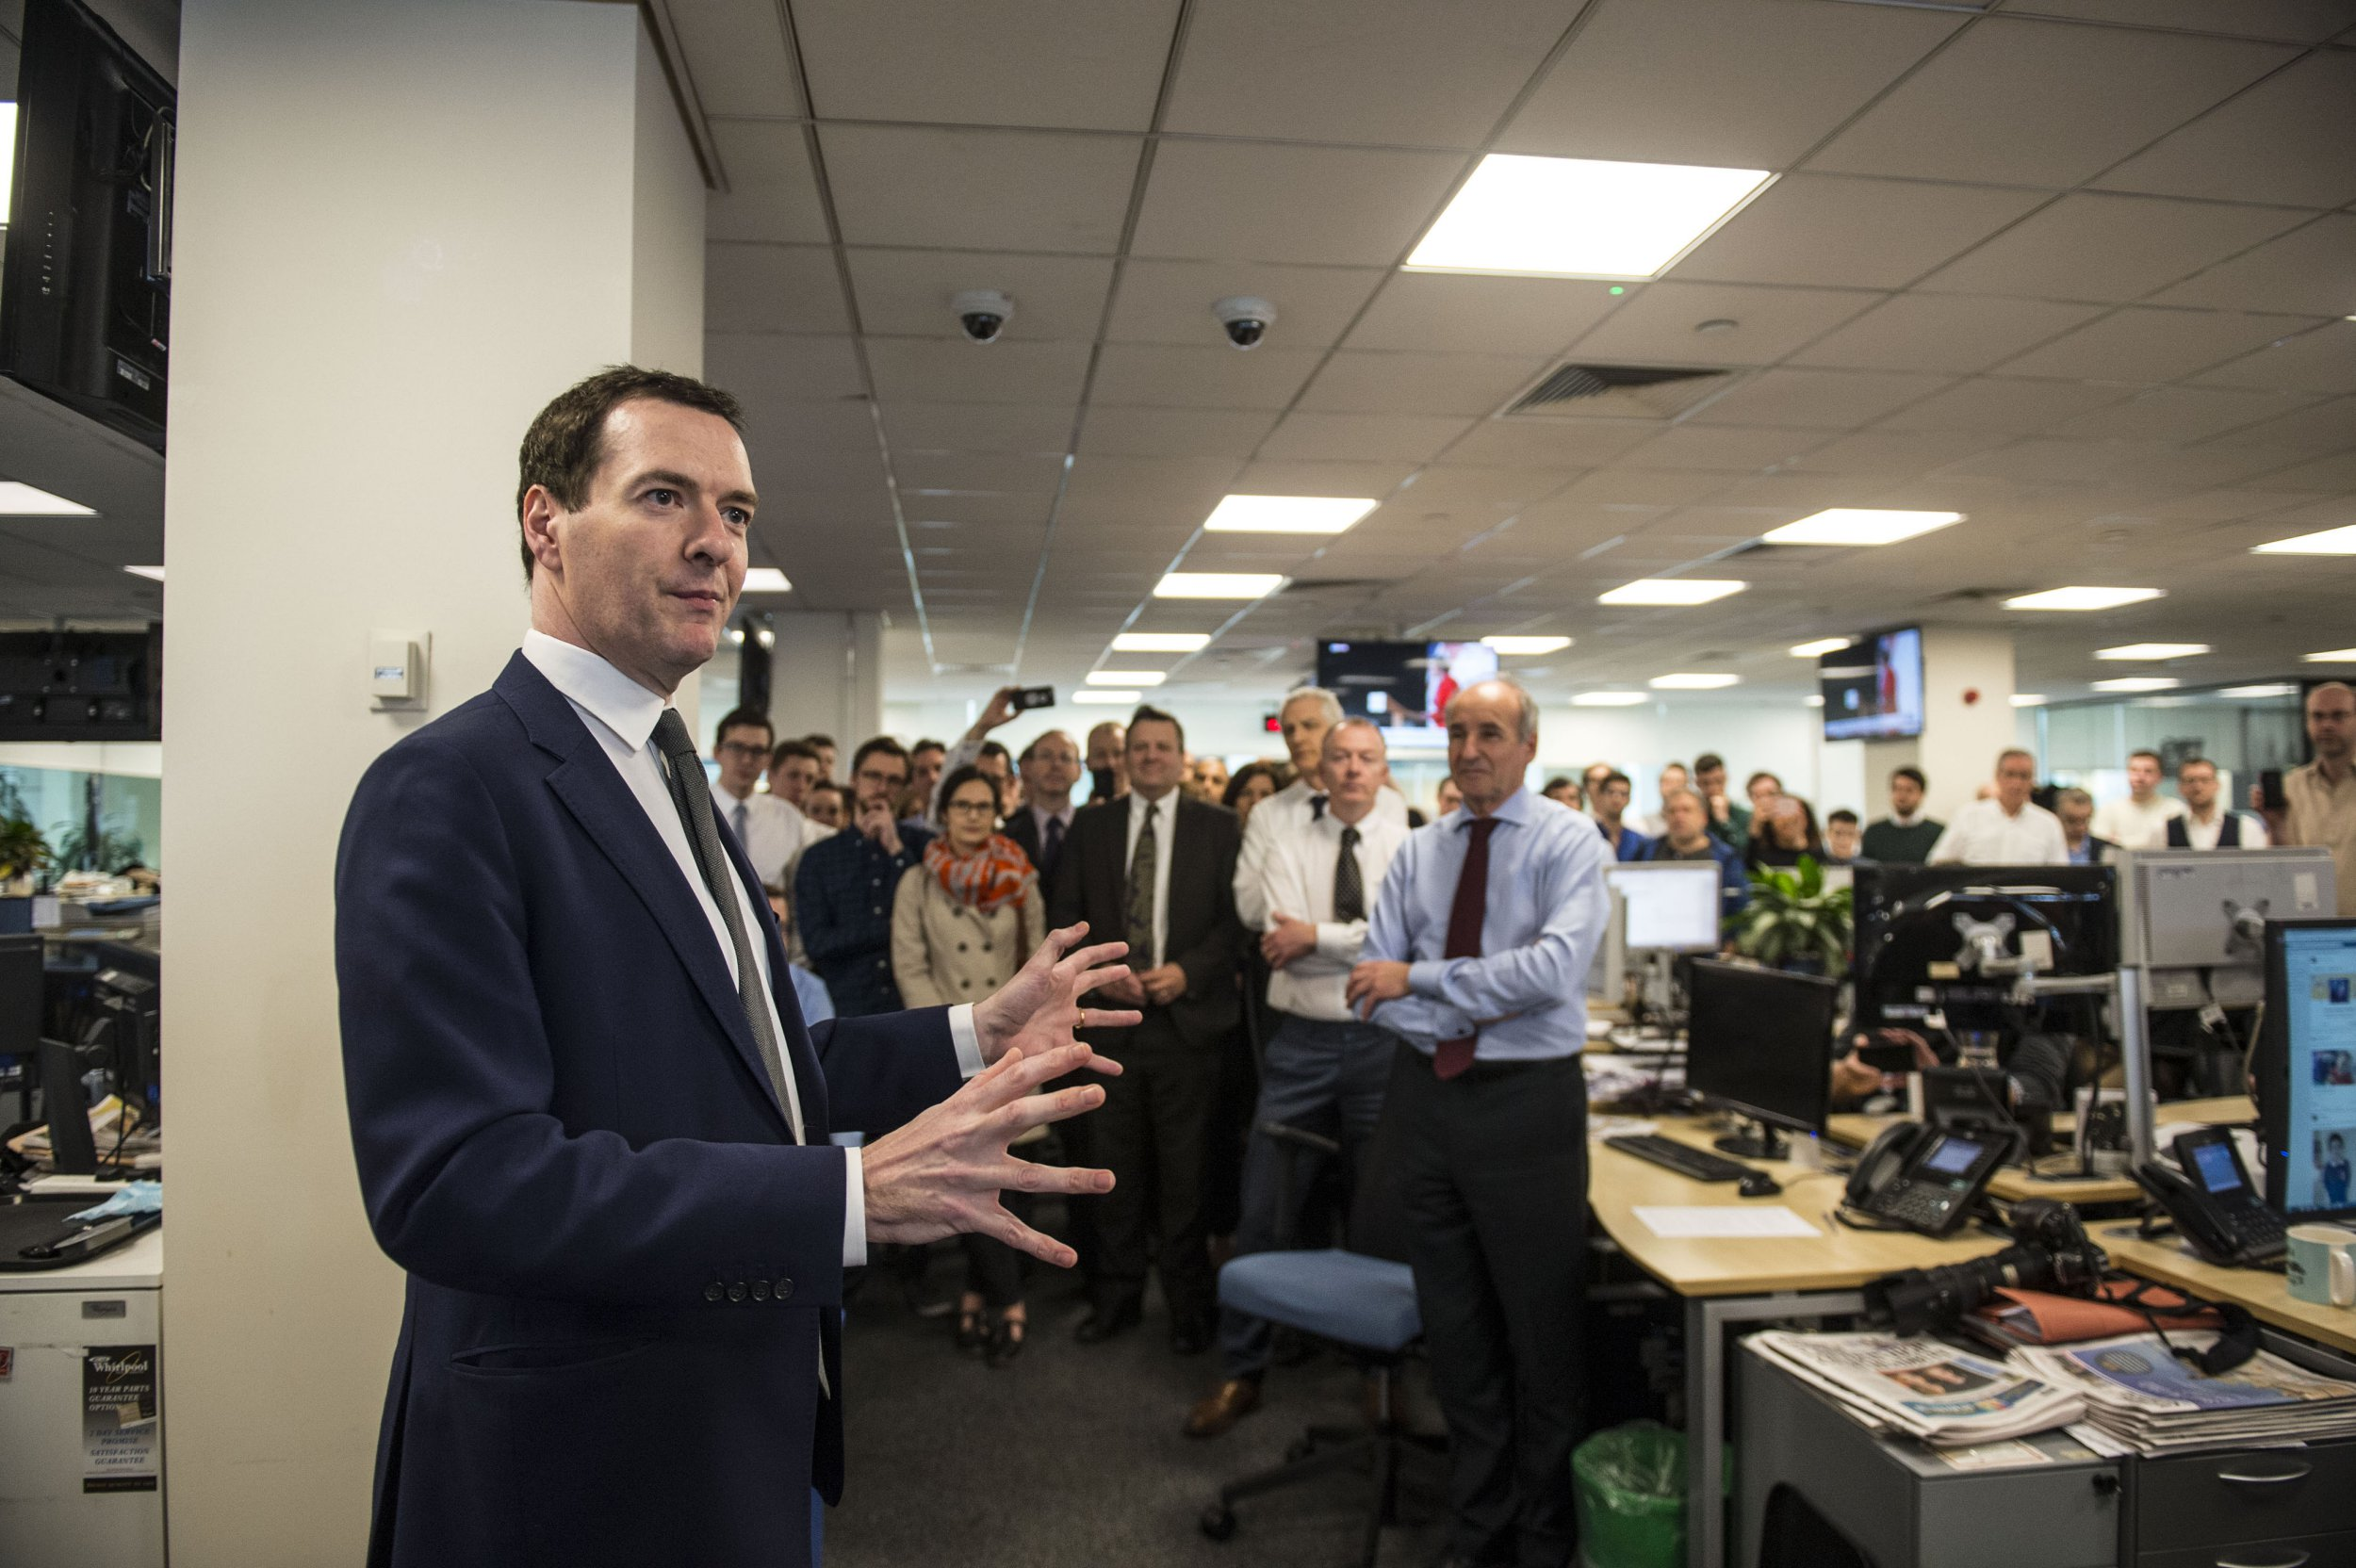 George Osborne quits as MP after becoming Evening Standard editor